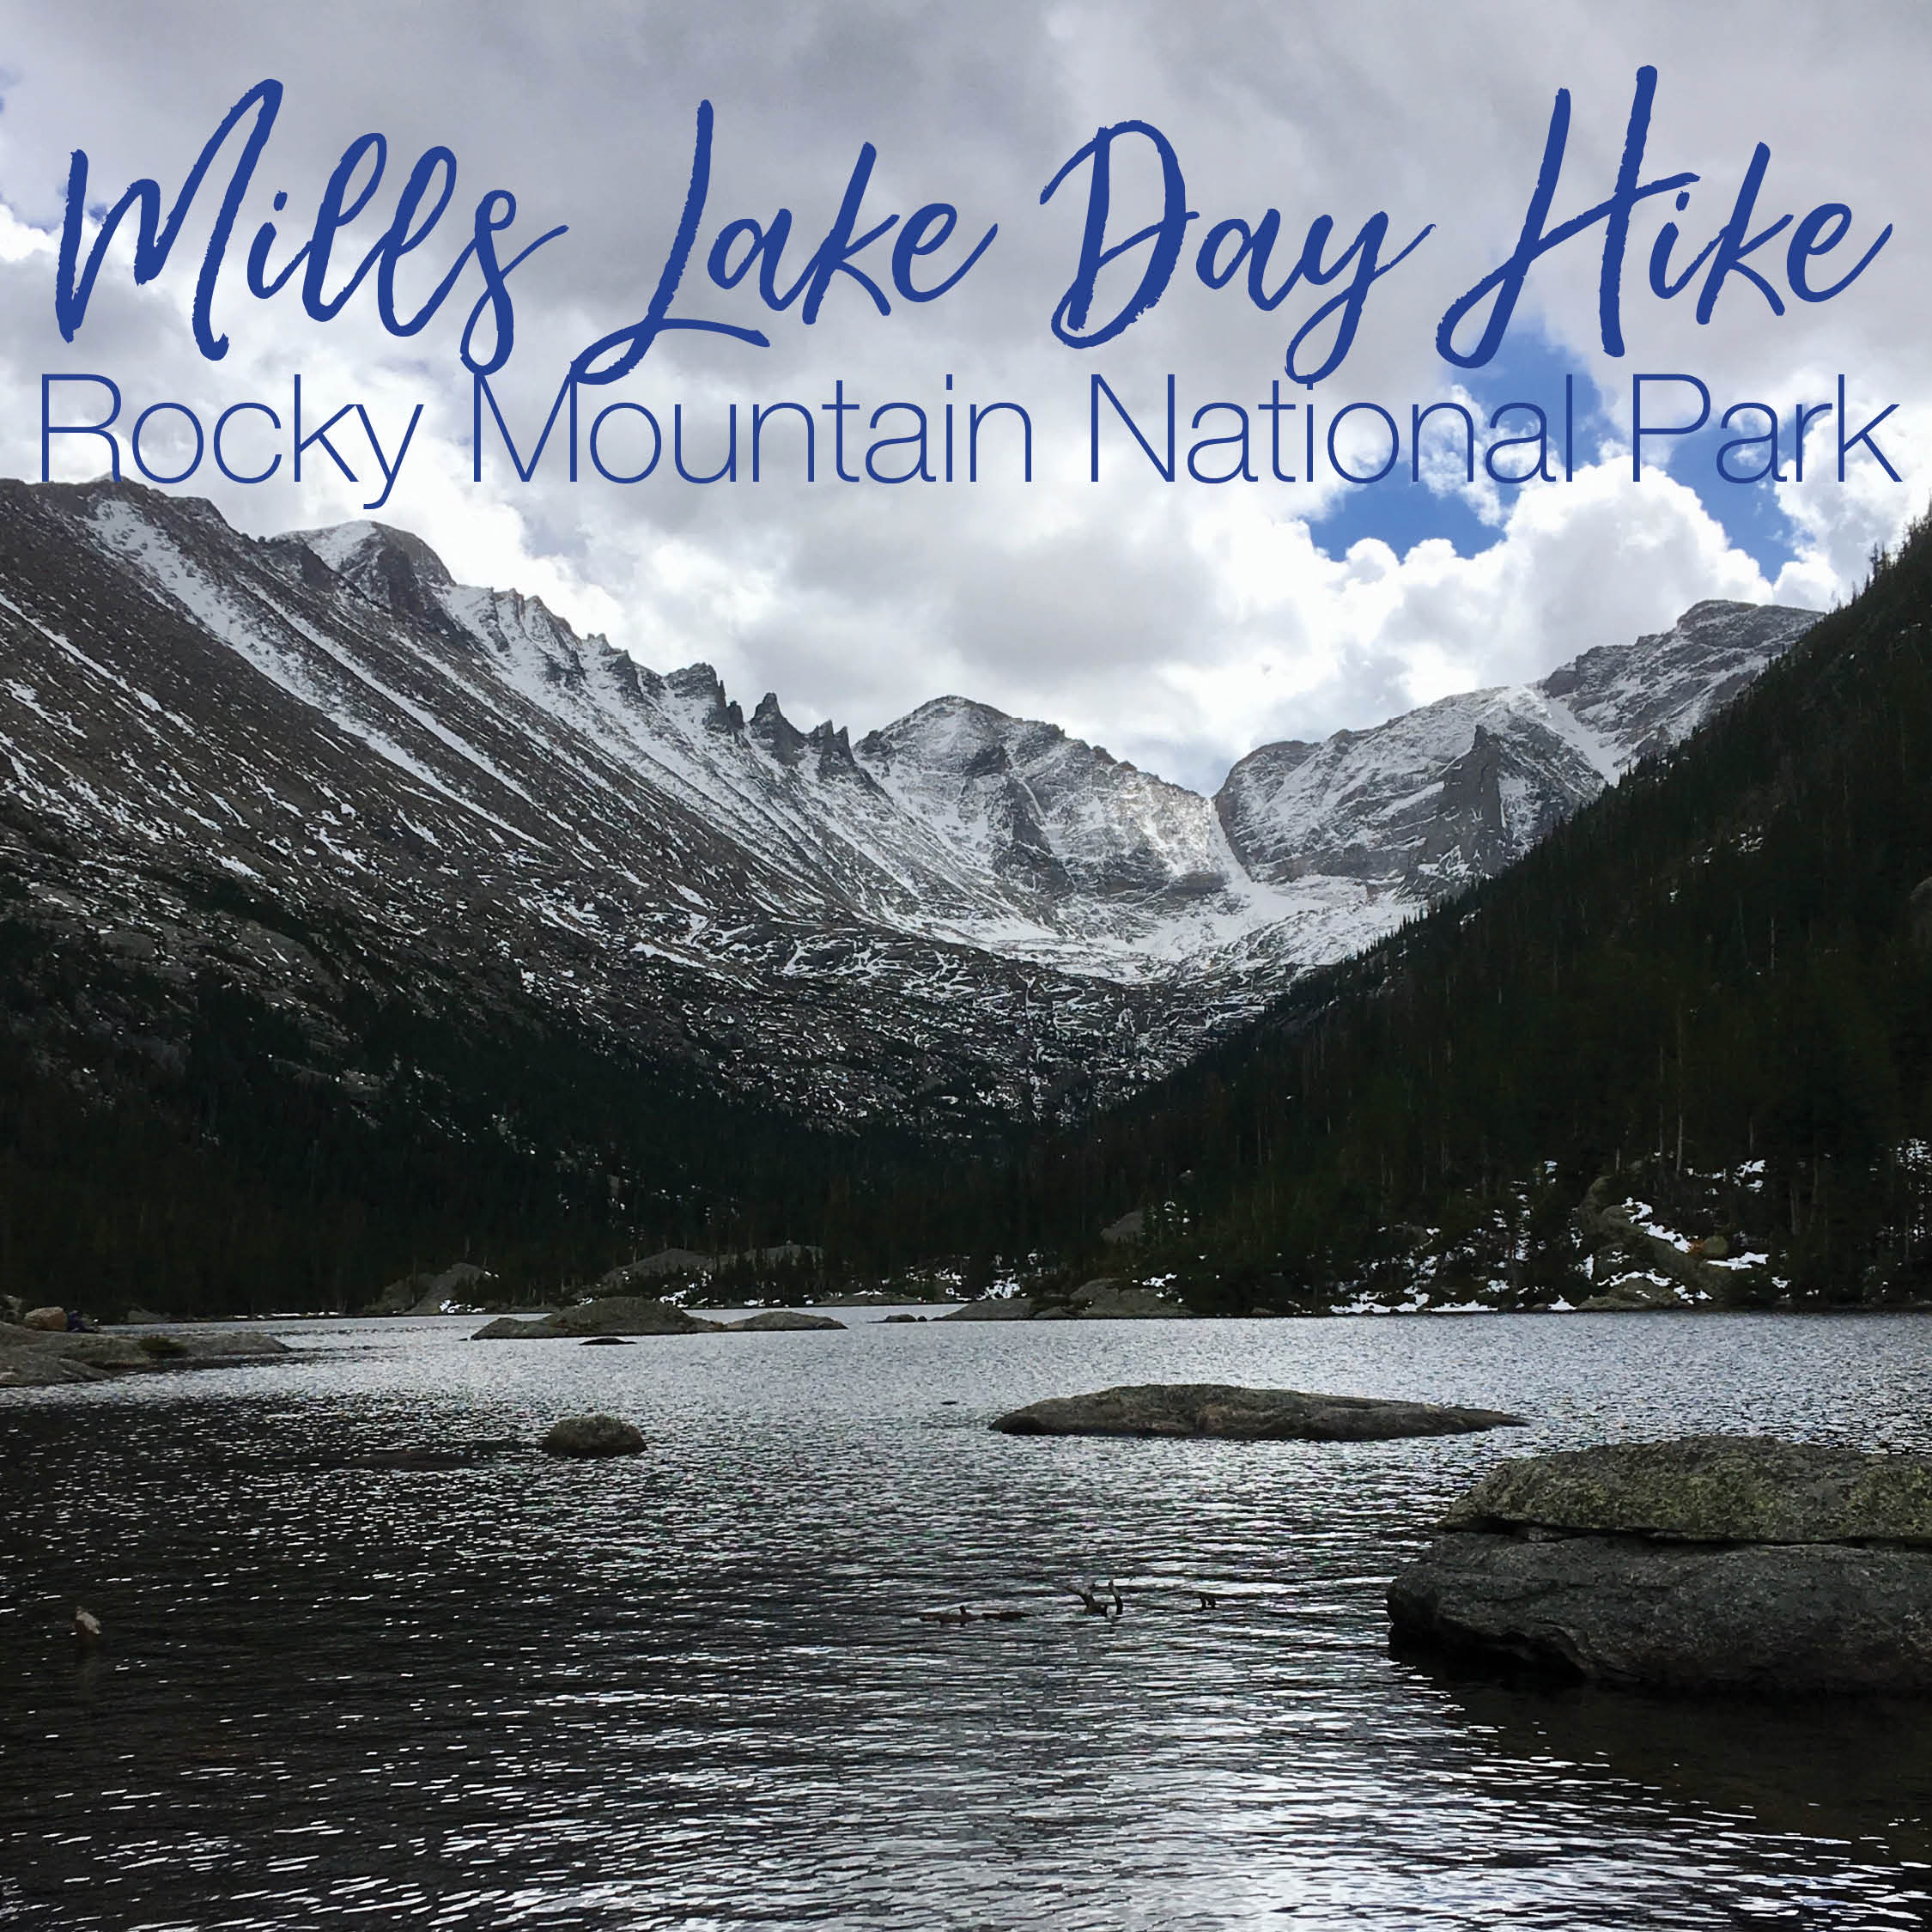 Mills Lake Day Hike.jpg